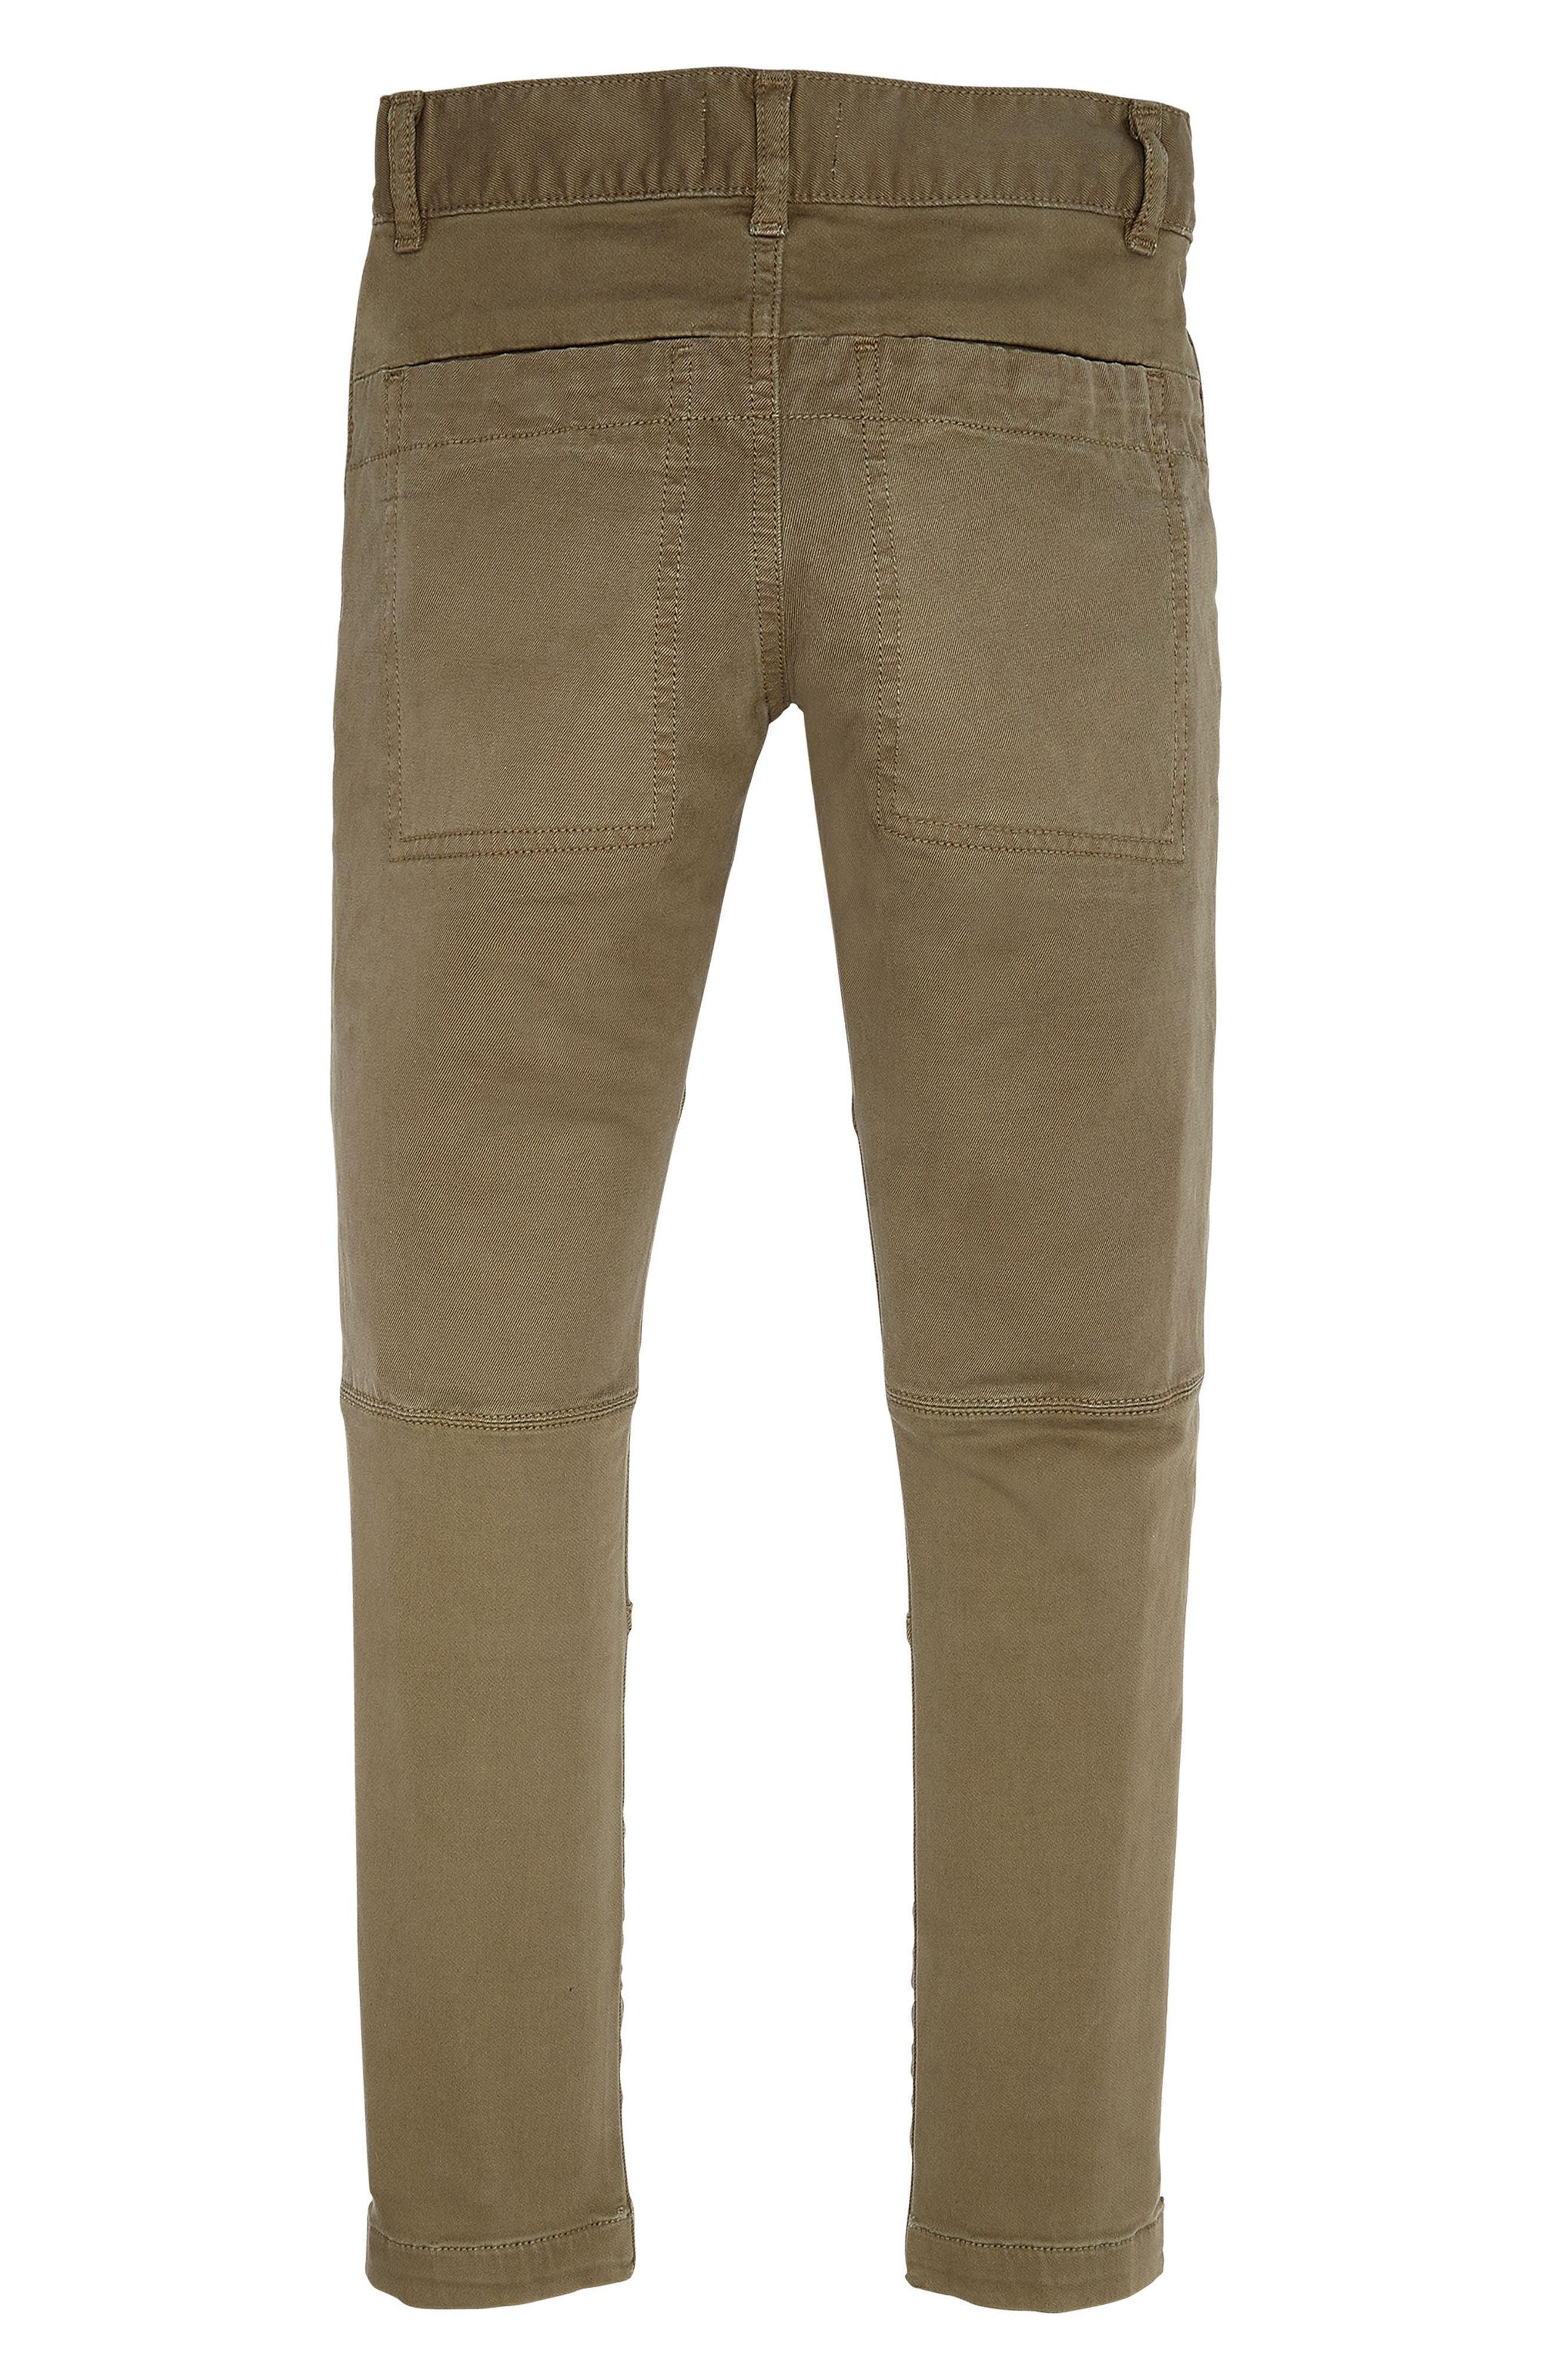 Hawke Skinny Fit Utility Jeans,                             Alternate thumbnail 2, color,                             Regime